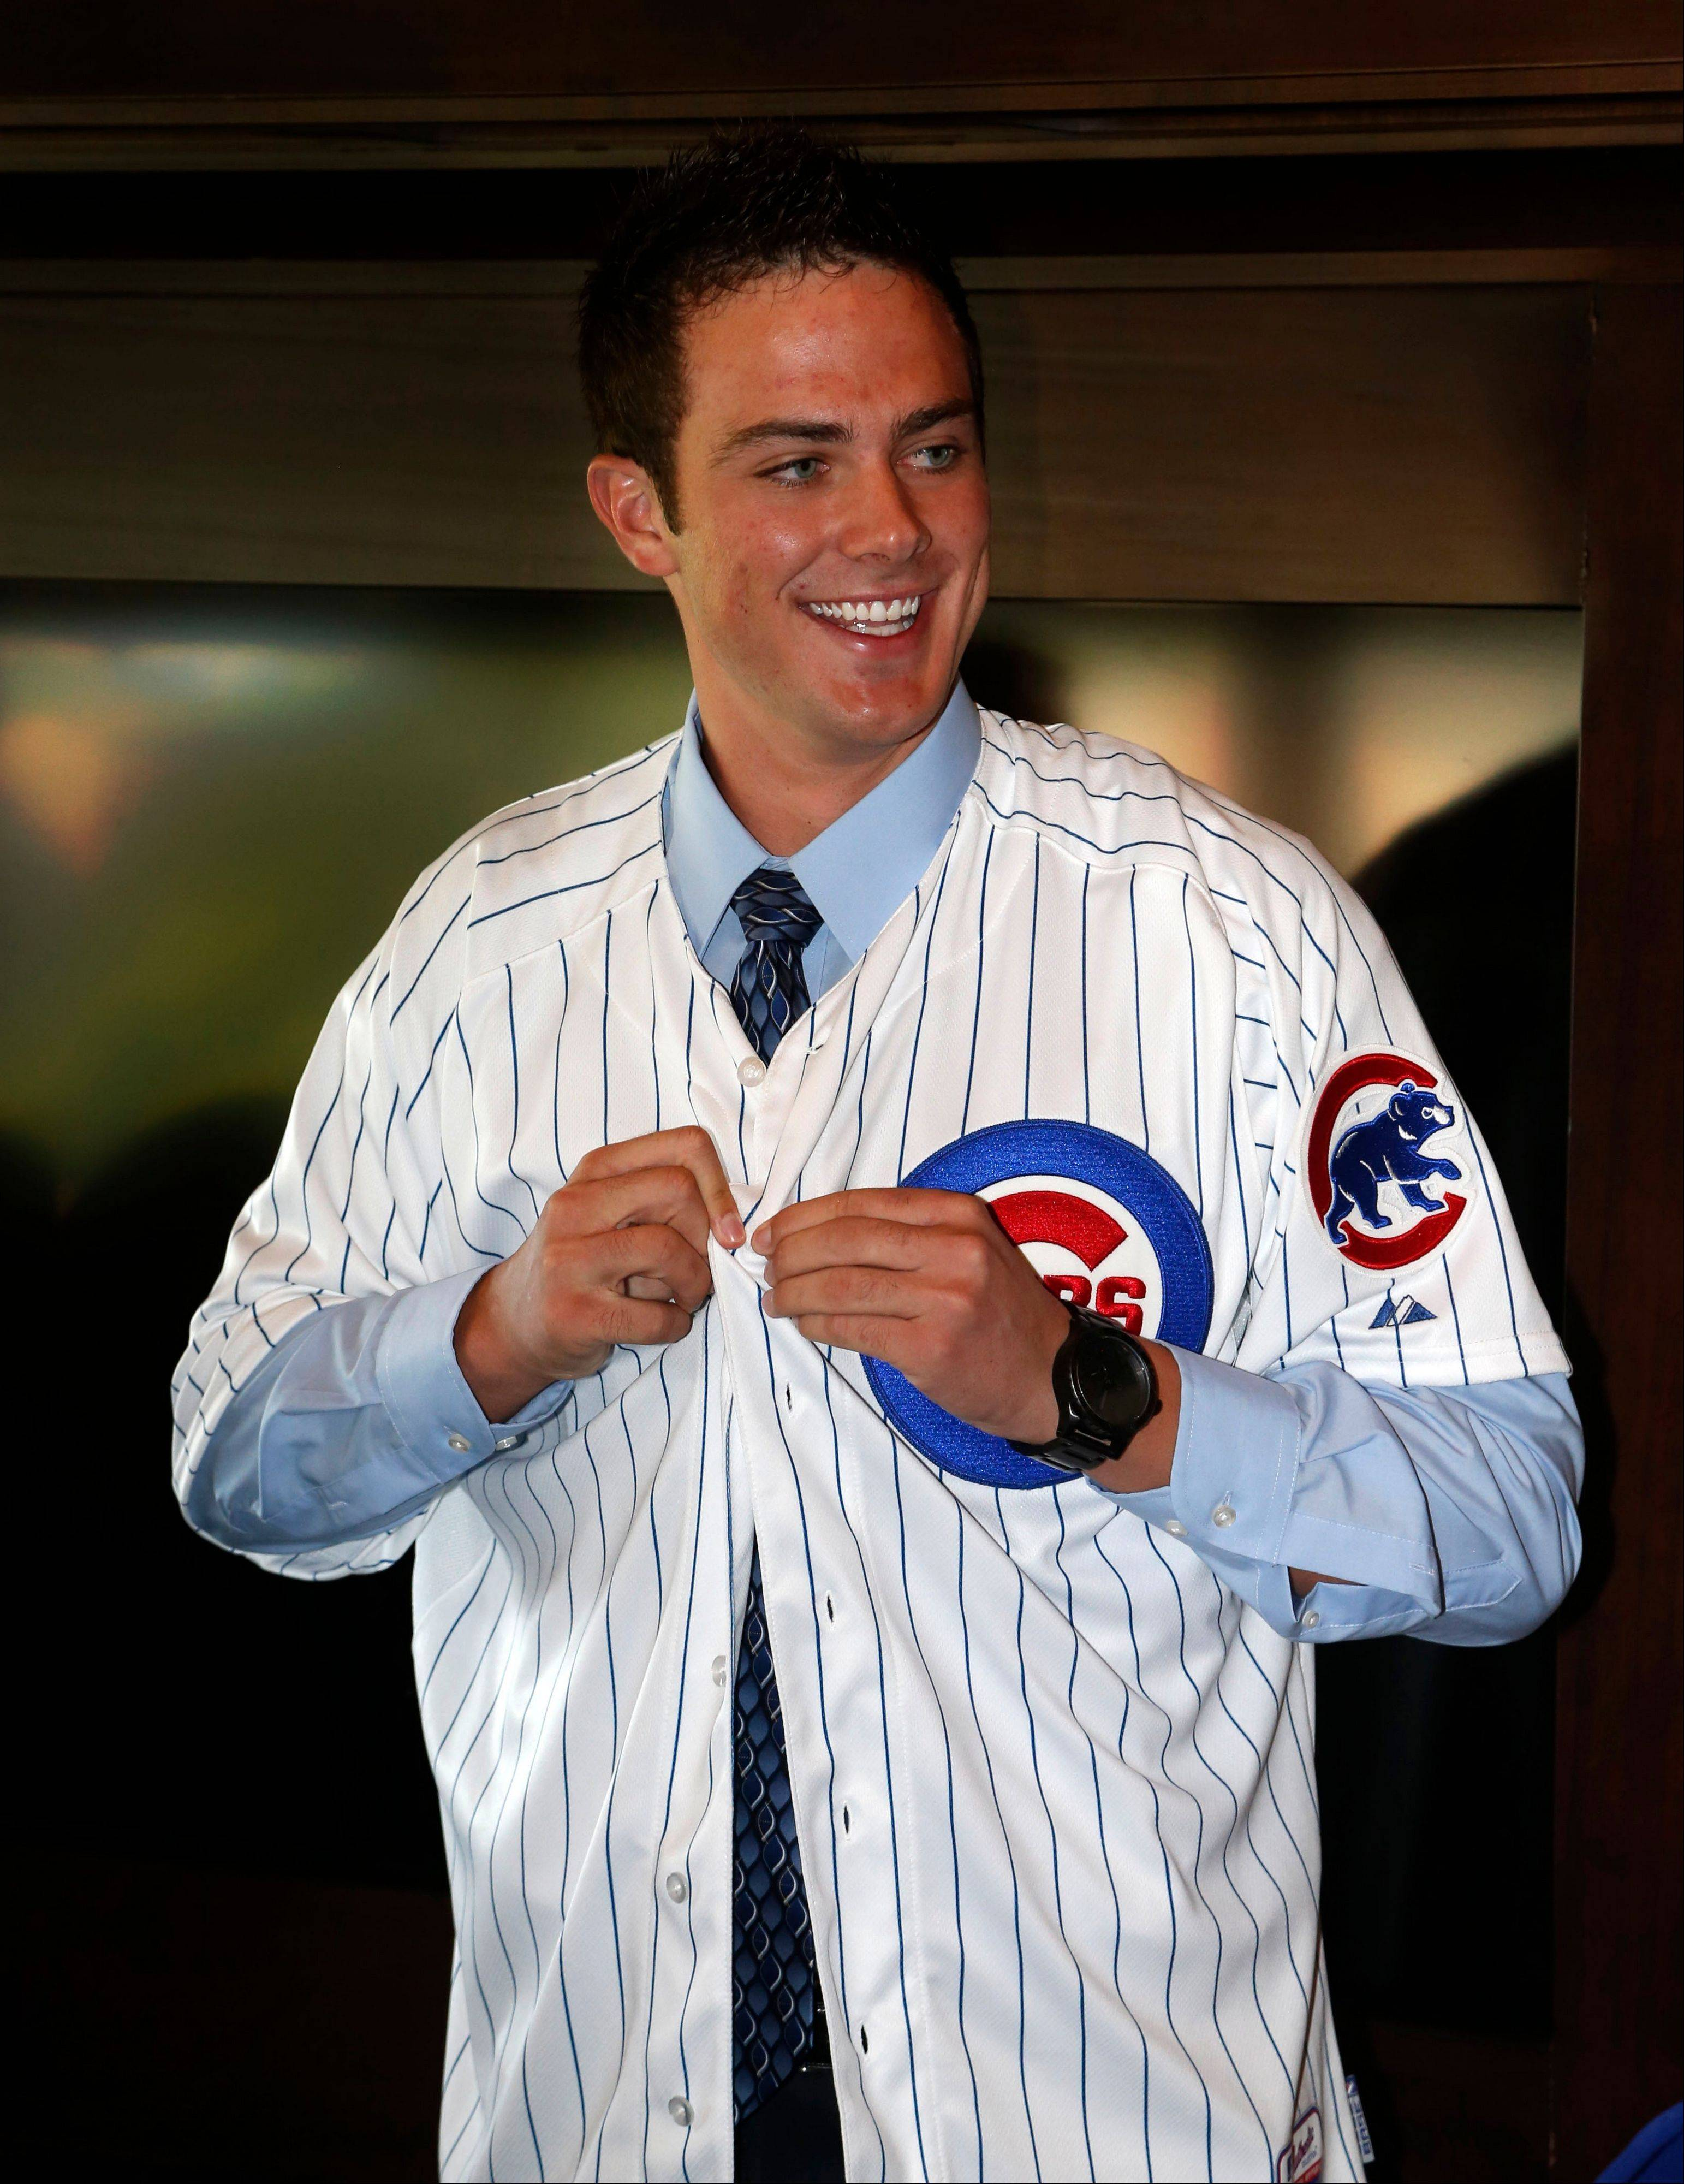 Cubs' first-round draft pick, third baseman Kris Bryant smiles as he puts on his jersey during a news conference where he was introduced to the media before a baseball game between the Chicago Cubs and the St. Louis Cardinals on Friday.